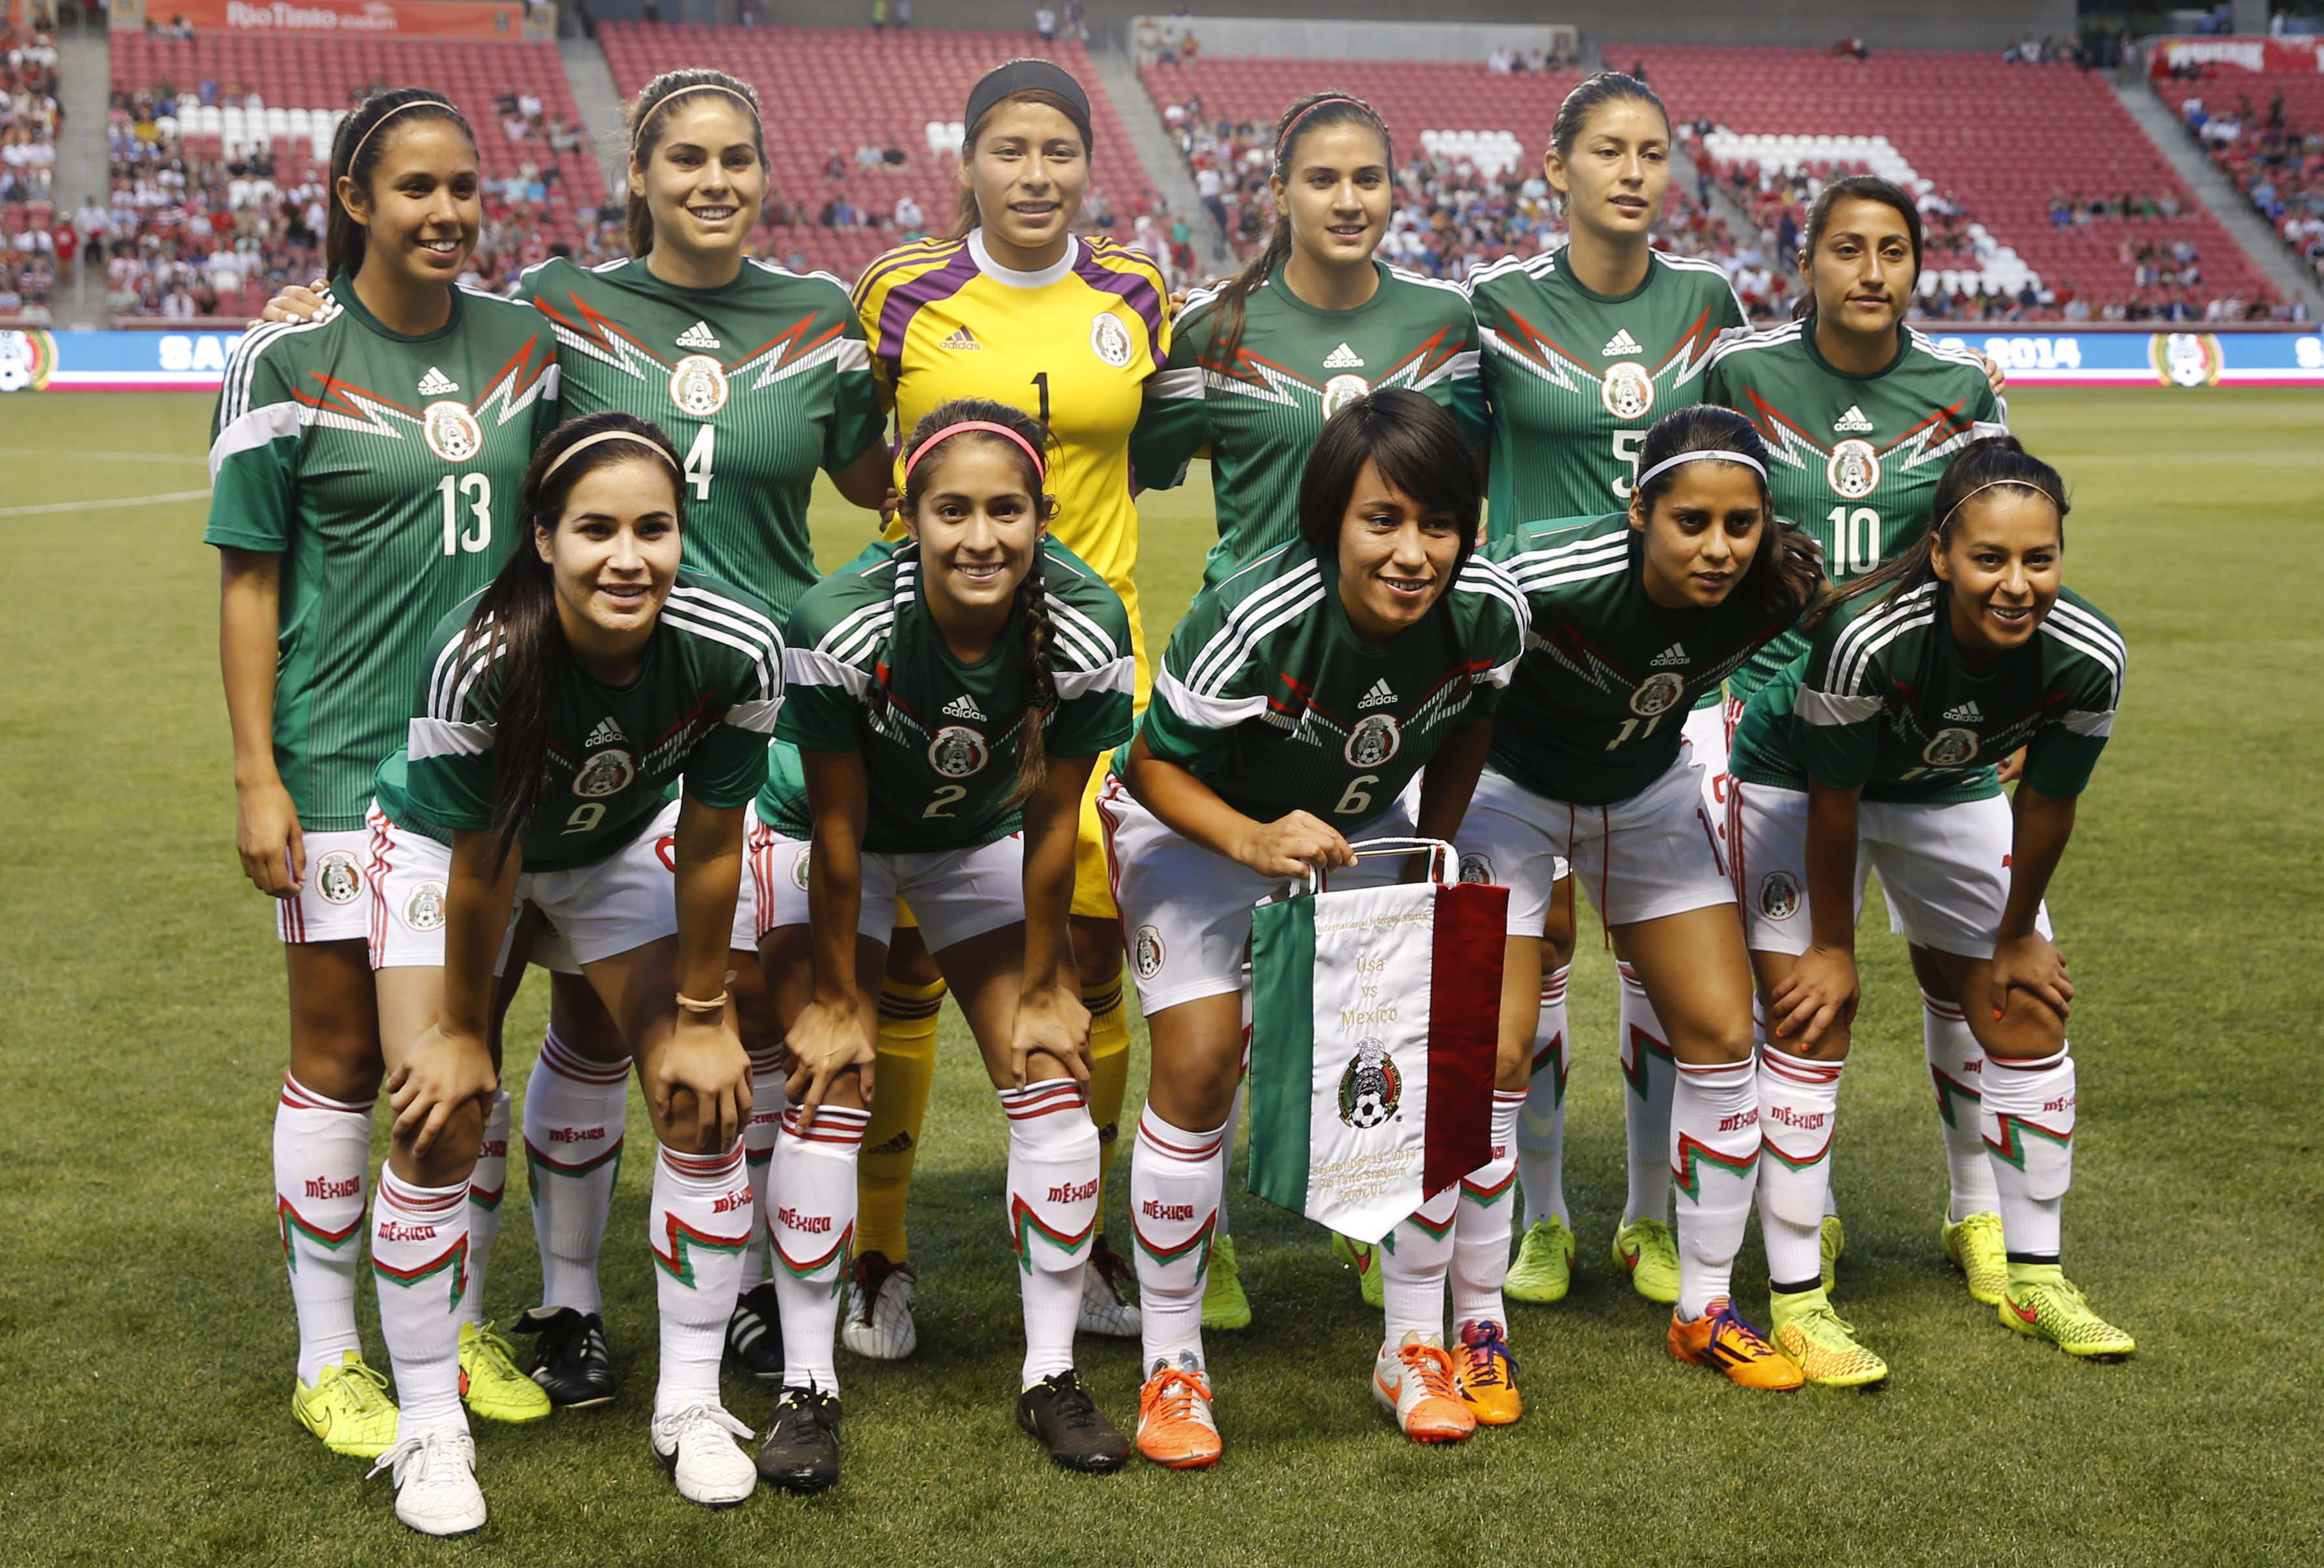 Mexico players will not participate in the NWSL until at least late 3571x2410